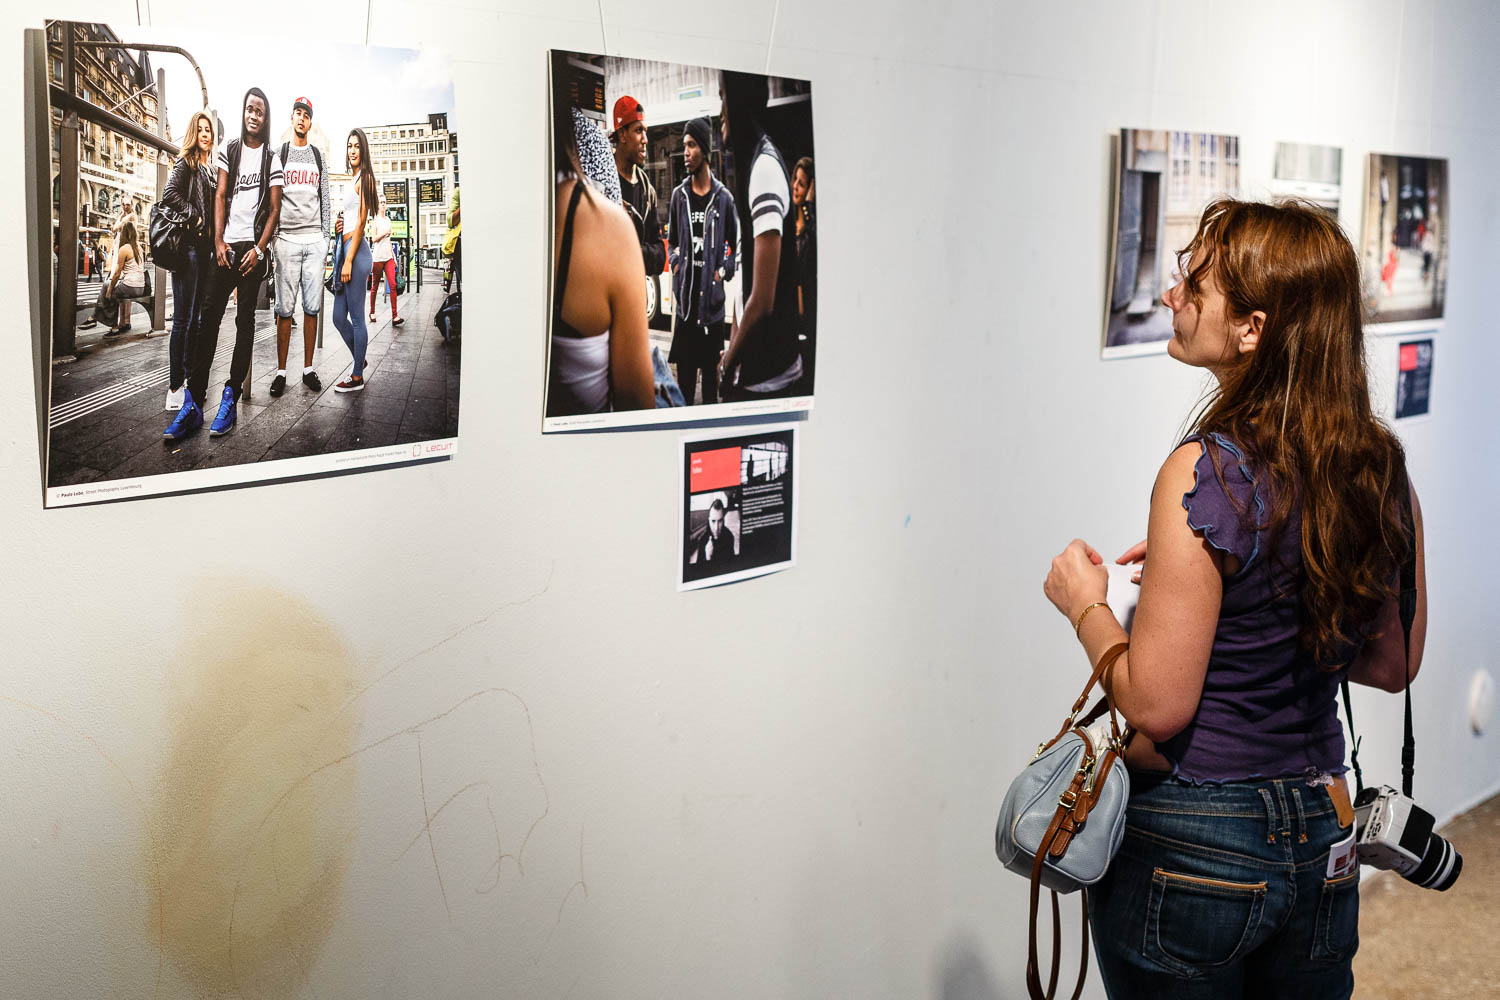 Collective exhibition by Street Photography Luxembourg at KUFA Kulturfabrik in Esch-sur-Alzette